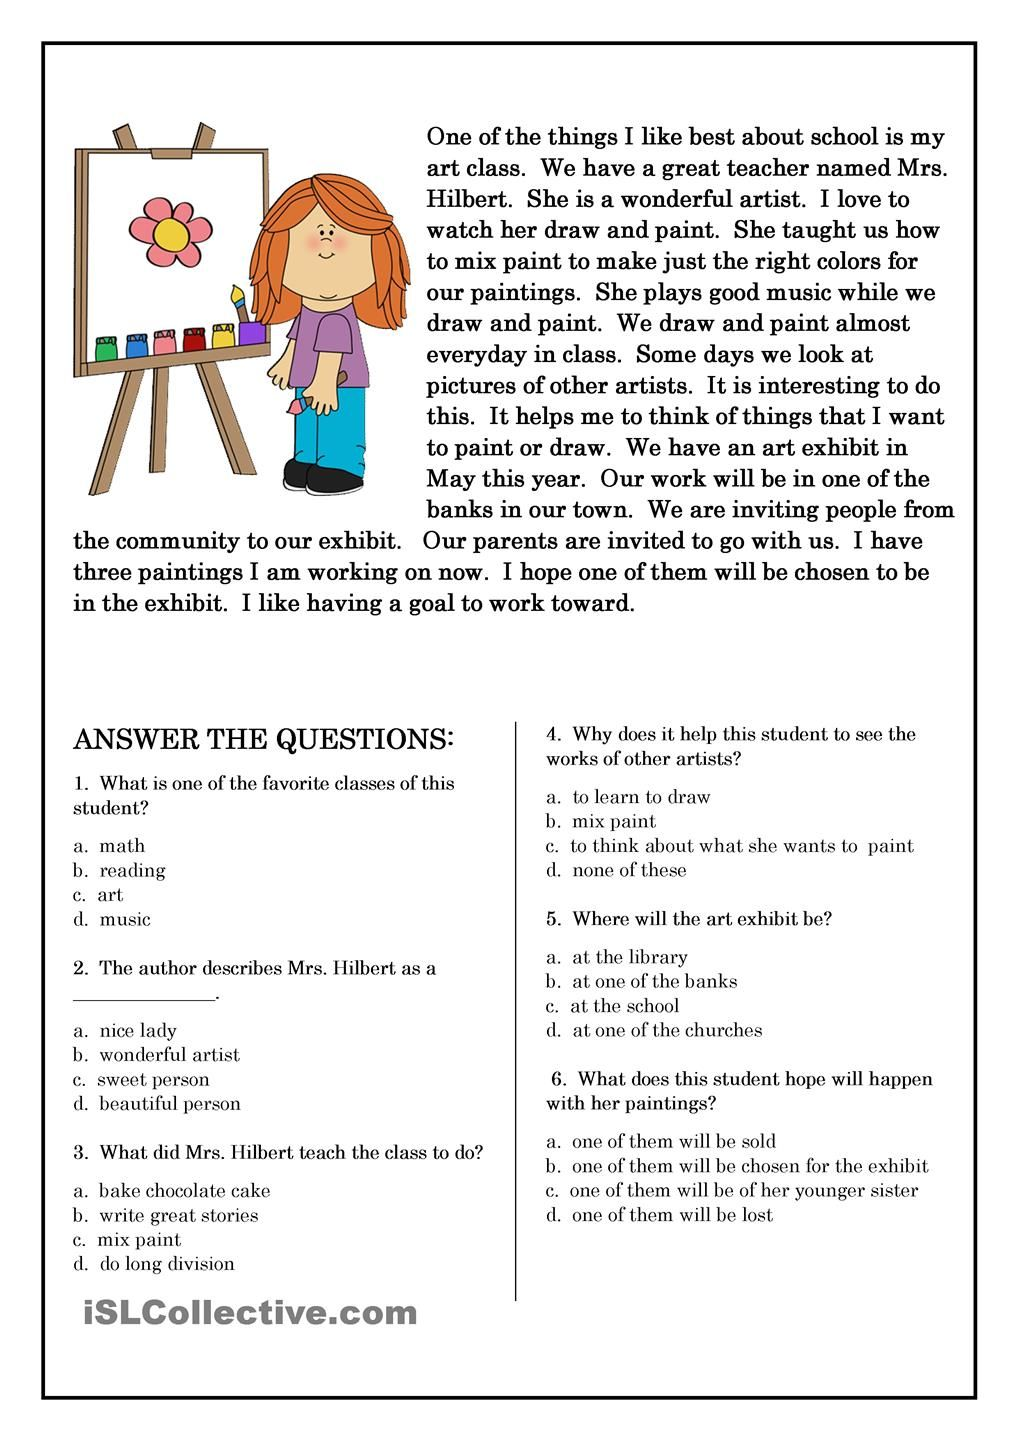 Reading With Questions Worksheets : English reading and comprehension worksheets Поиск в